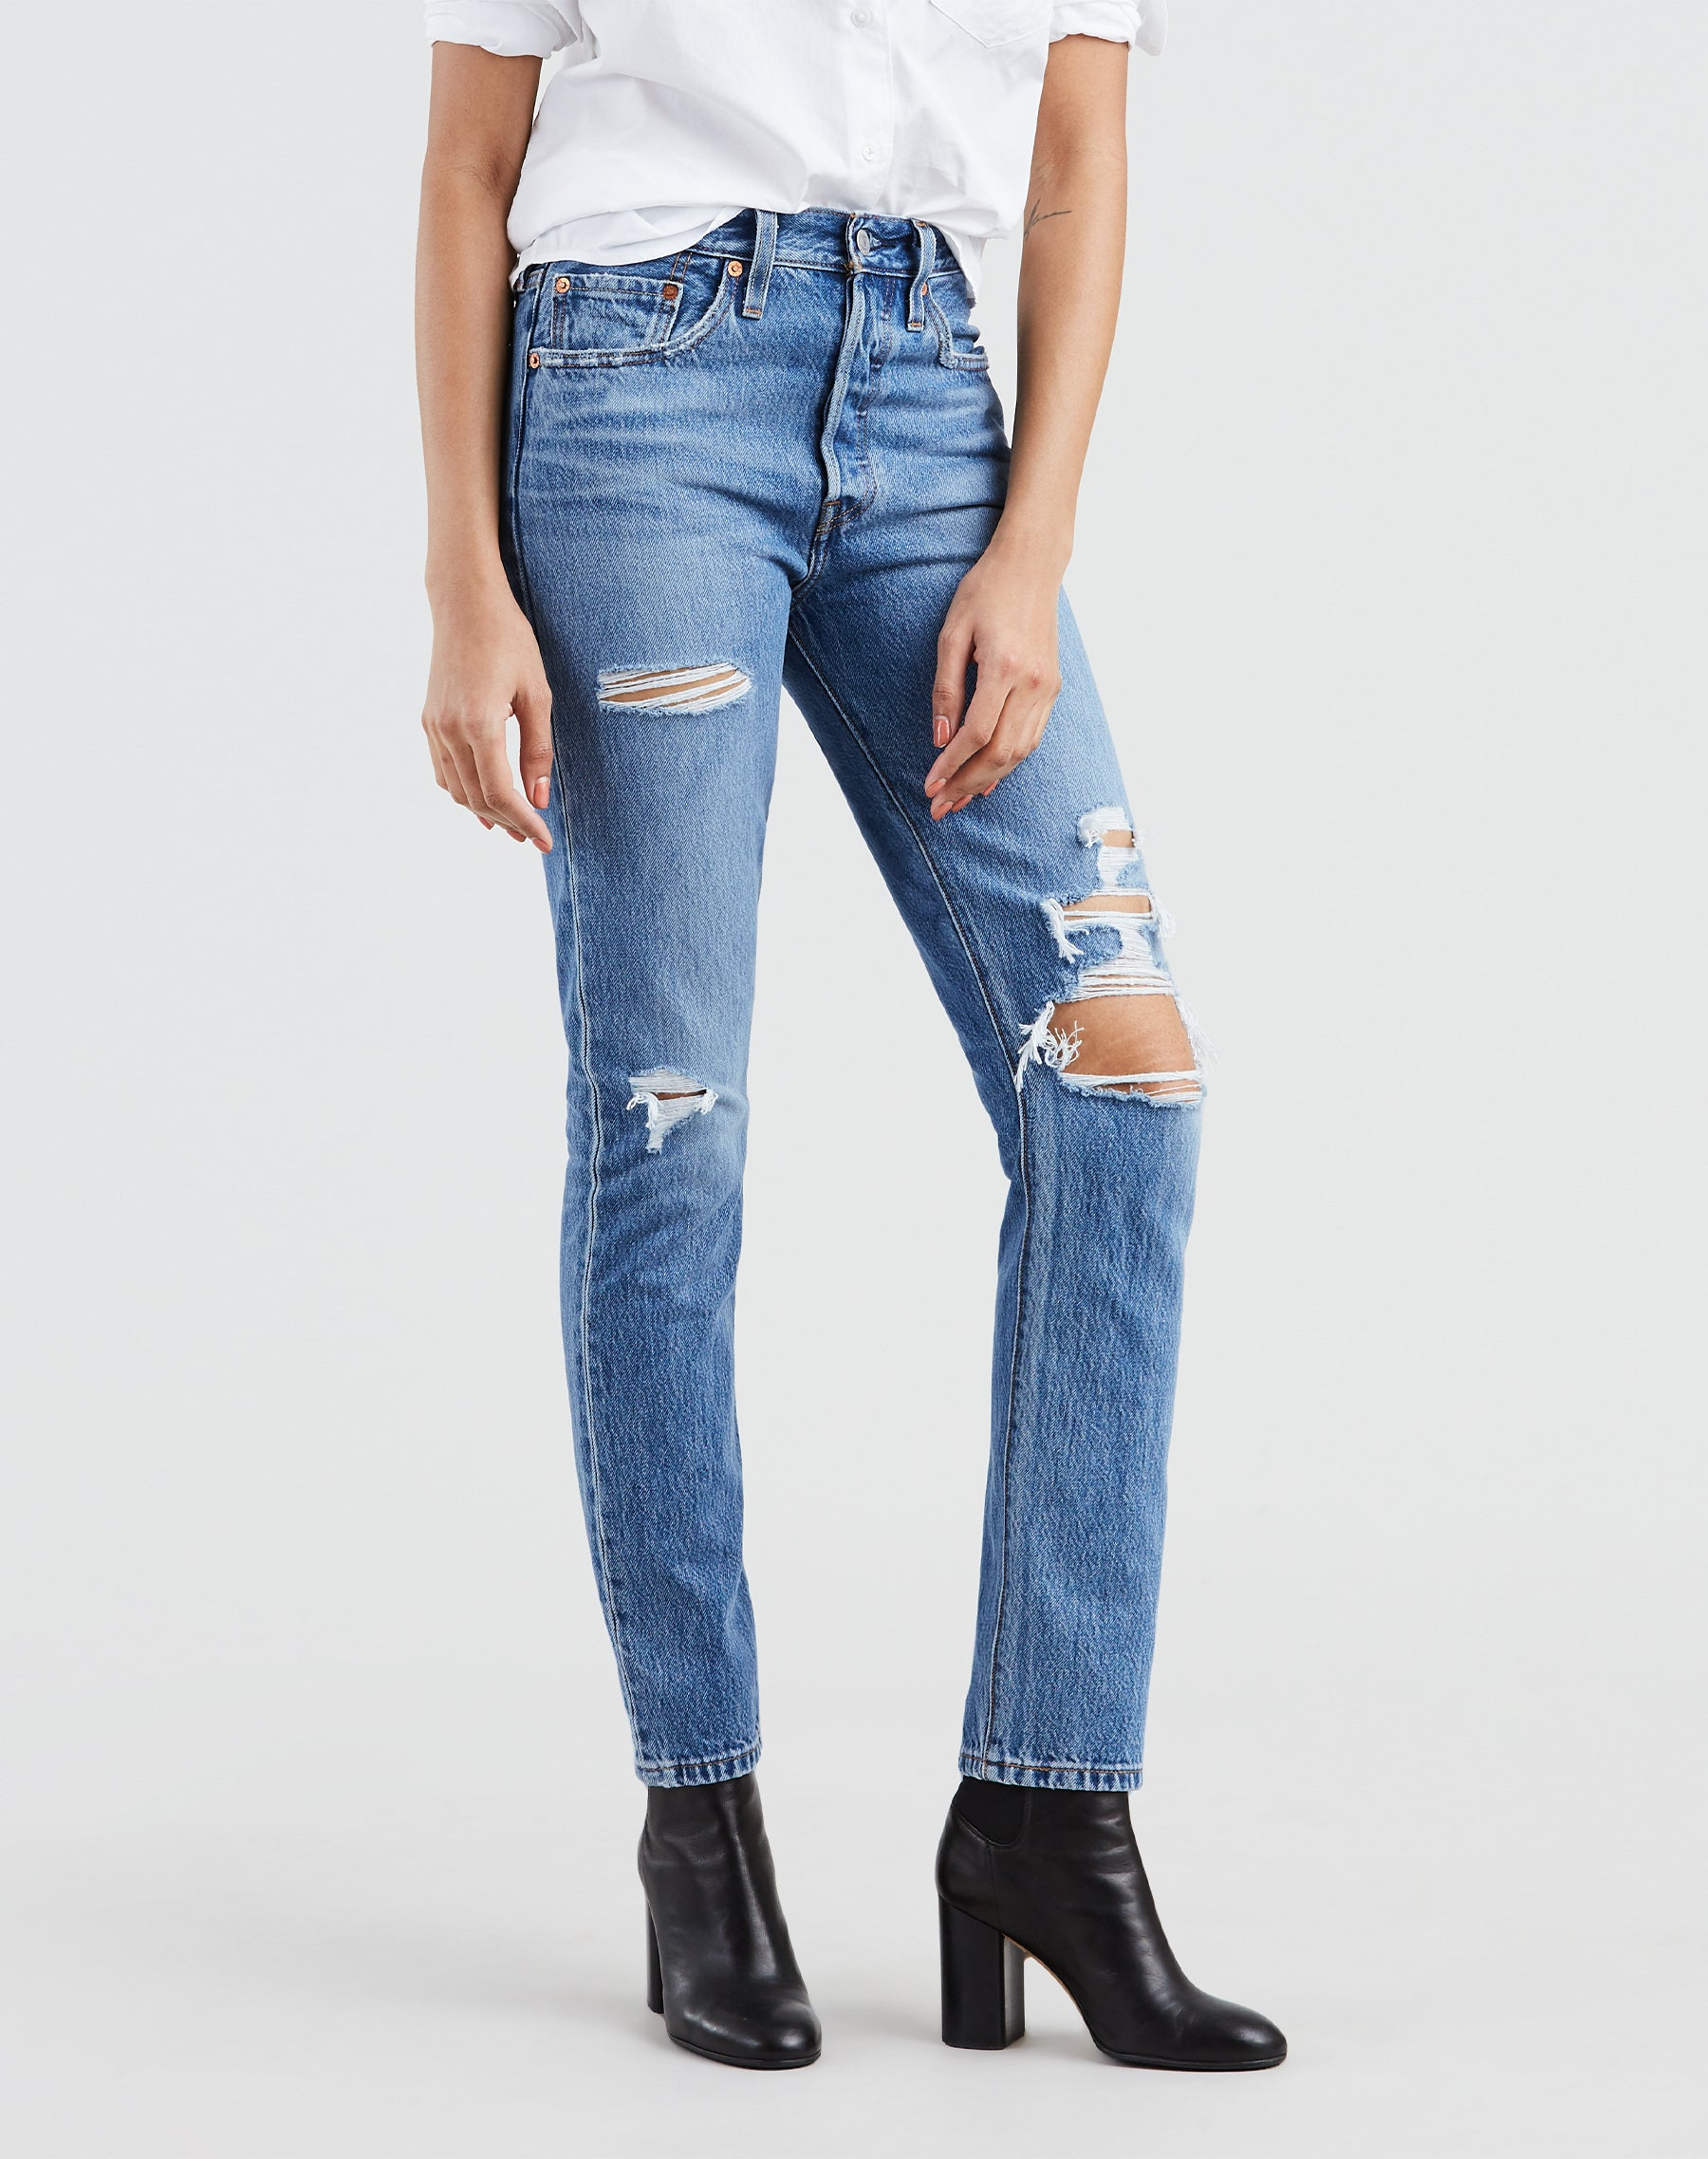 Photo of the Nice as Pie jeans with distressed detailing by Levi's.